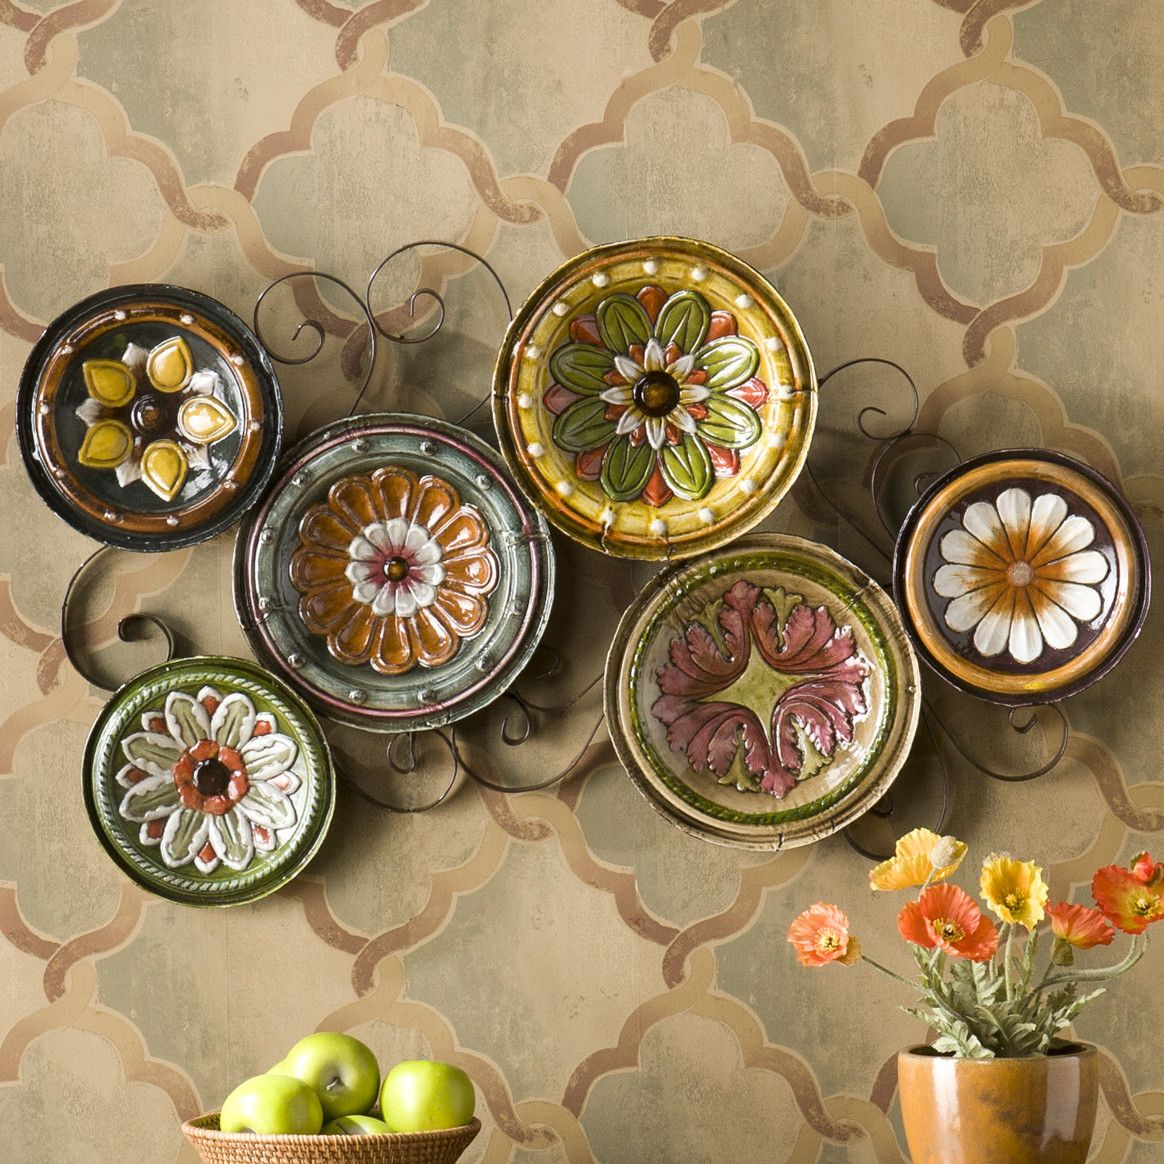 Wildon Home ® Scattered Italian Plates Wall Décor | Things throughout Scattered Metal Italian Plates Wall Decor (Image 29 of 30)